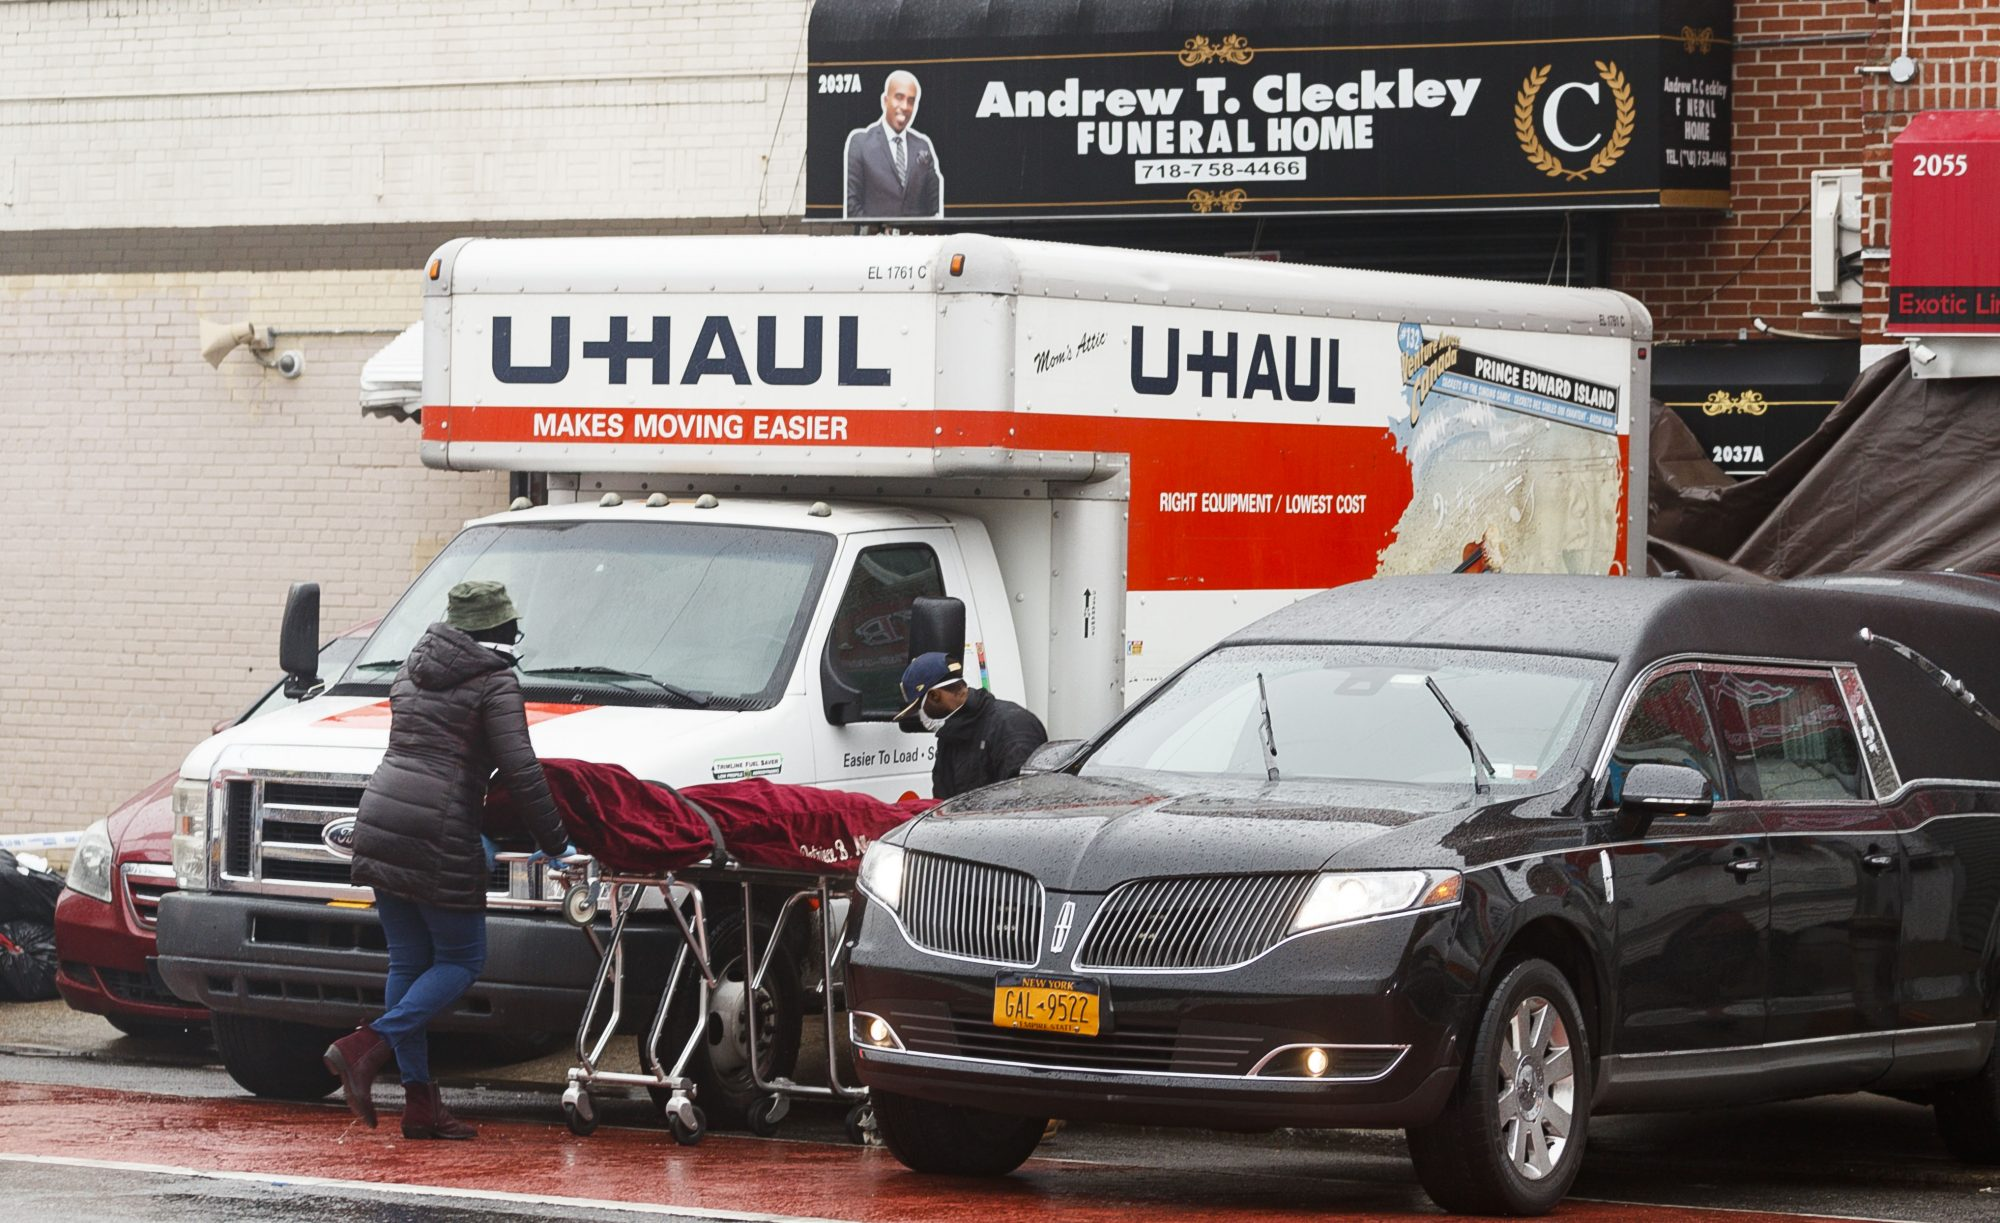 U-haul bodies outside of funeral home